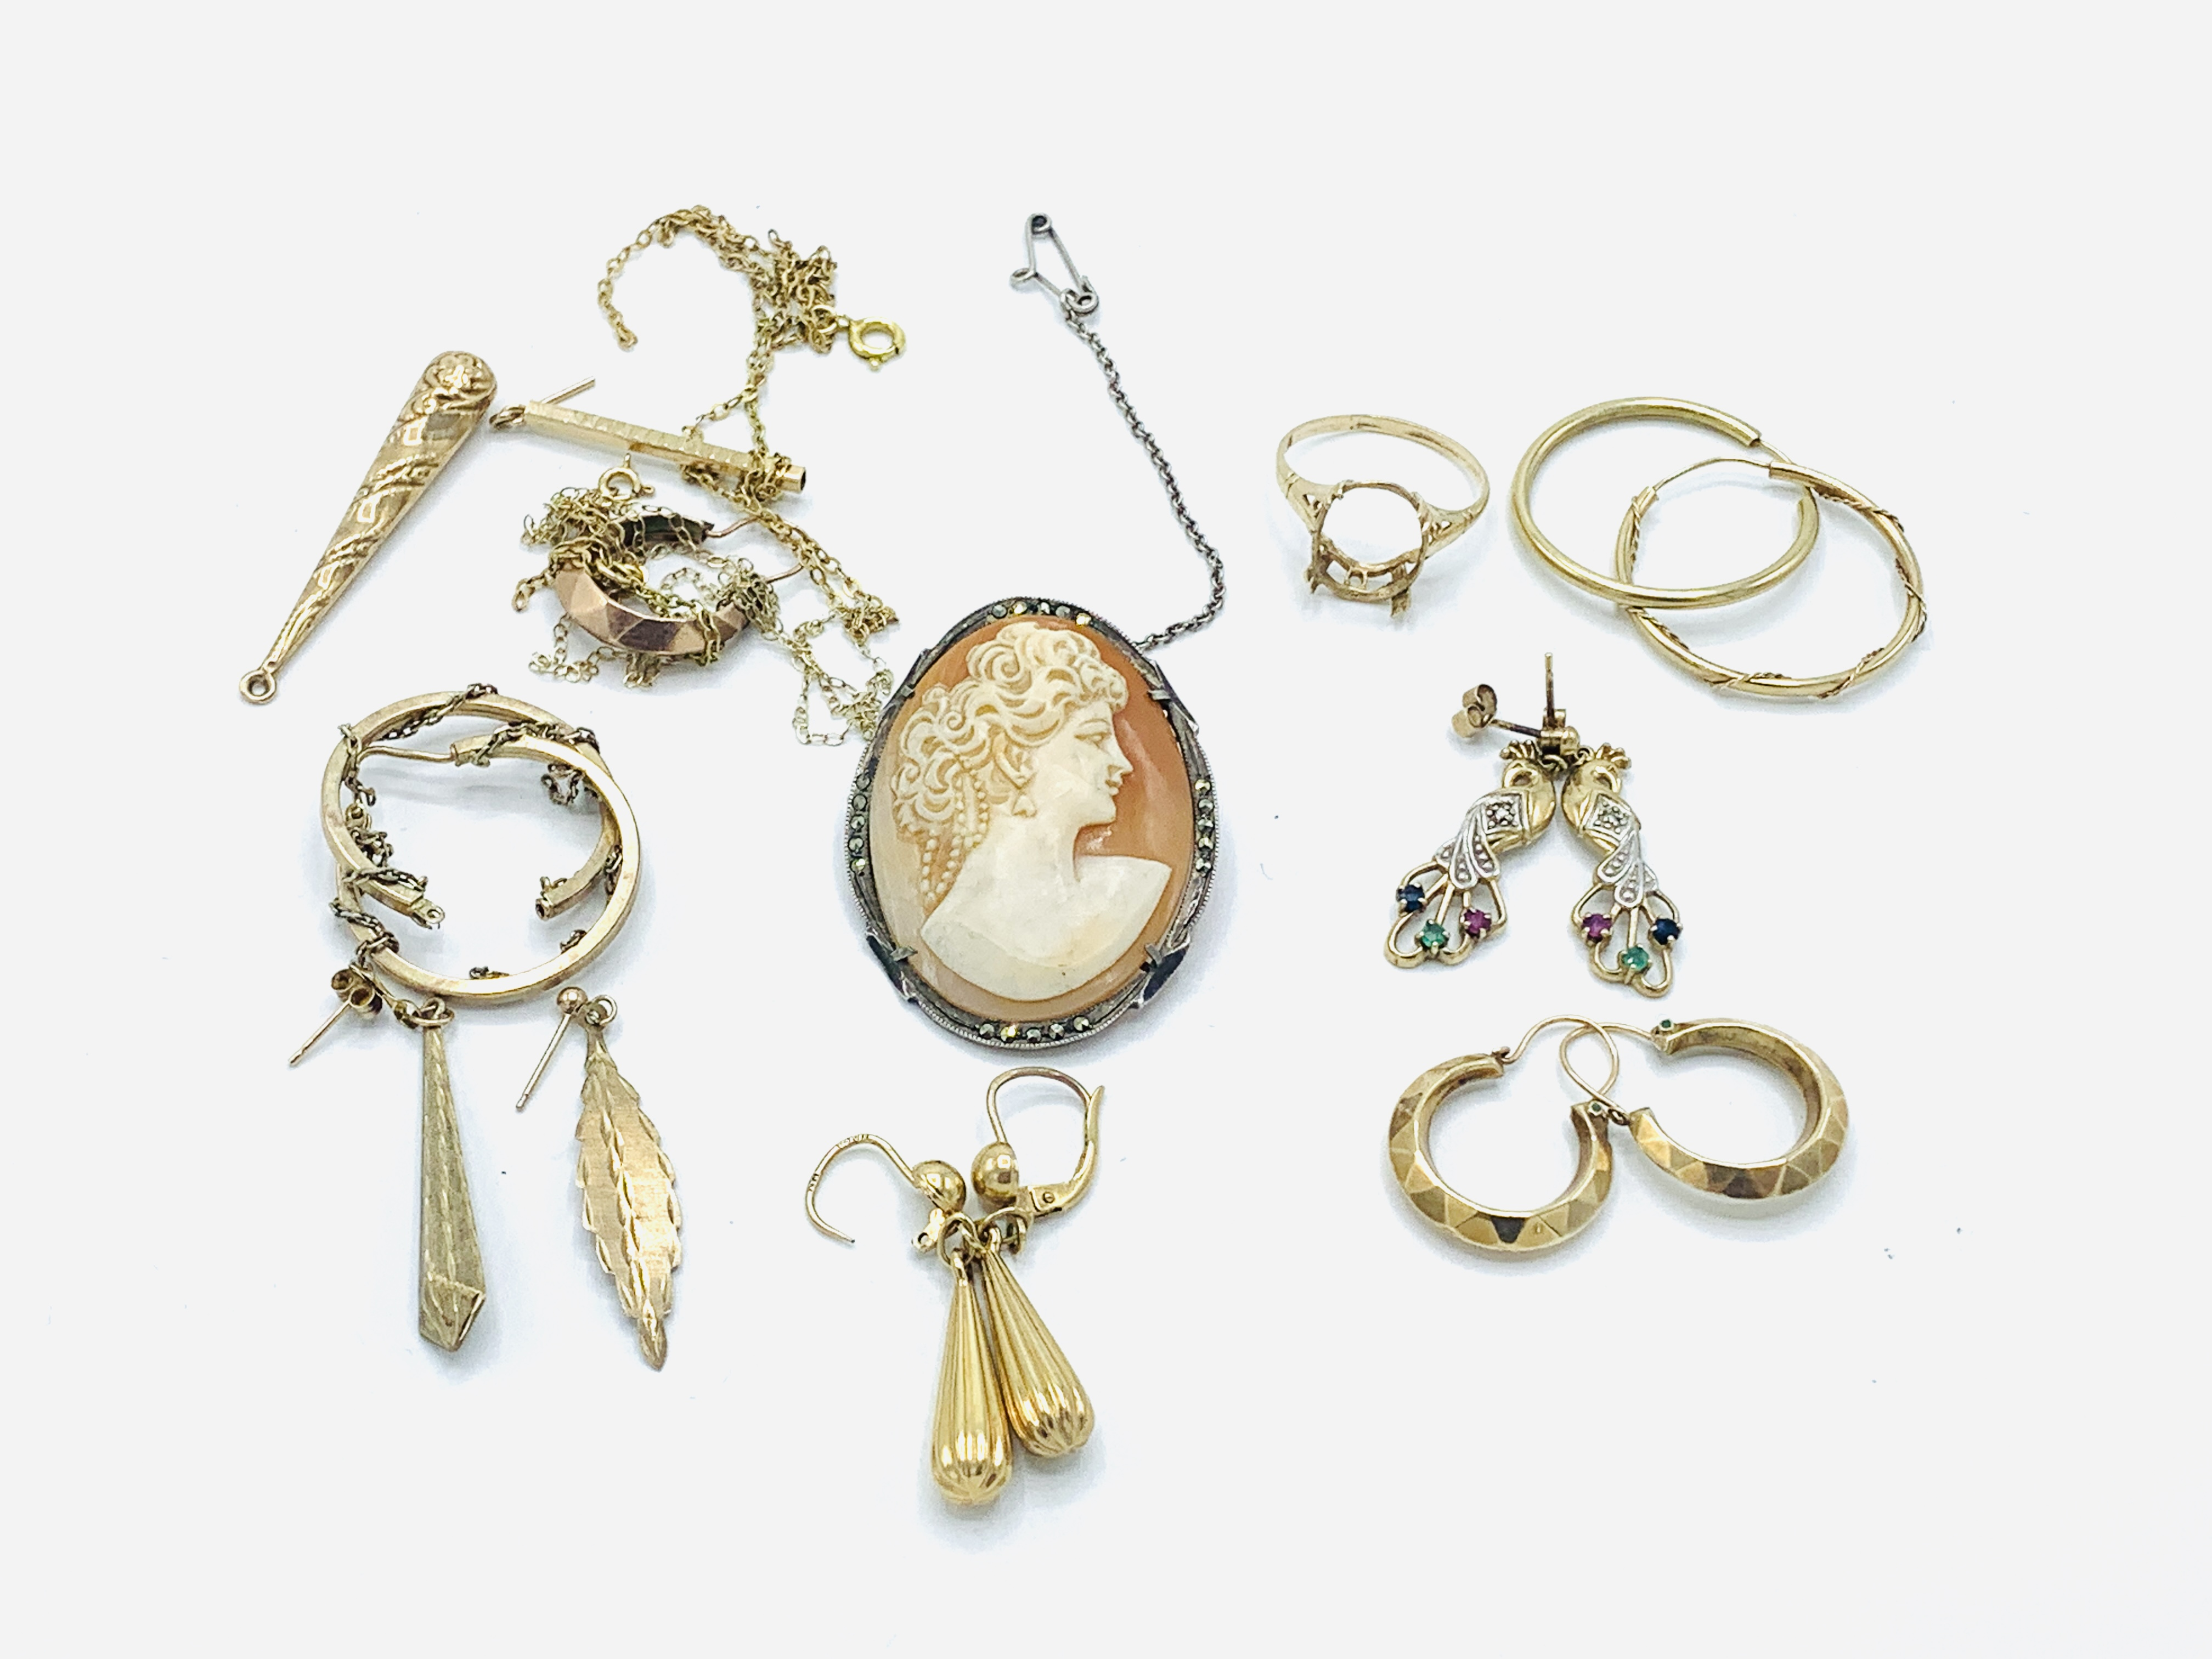 Six pairs of 9ct gold earrings; together with other jewellery - Image 5 of 5